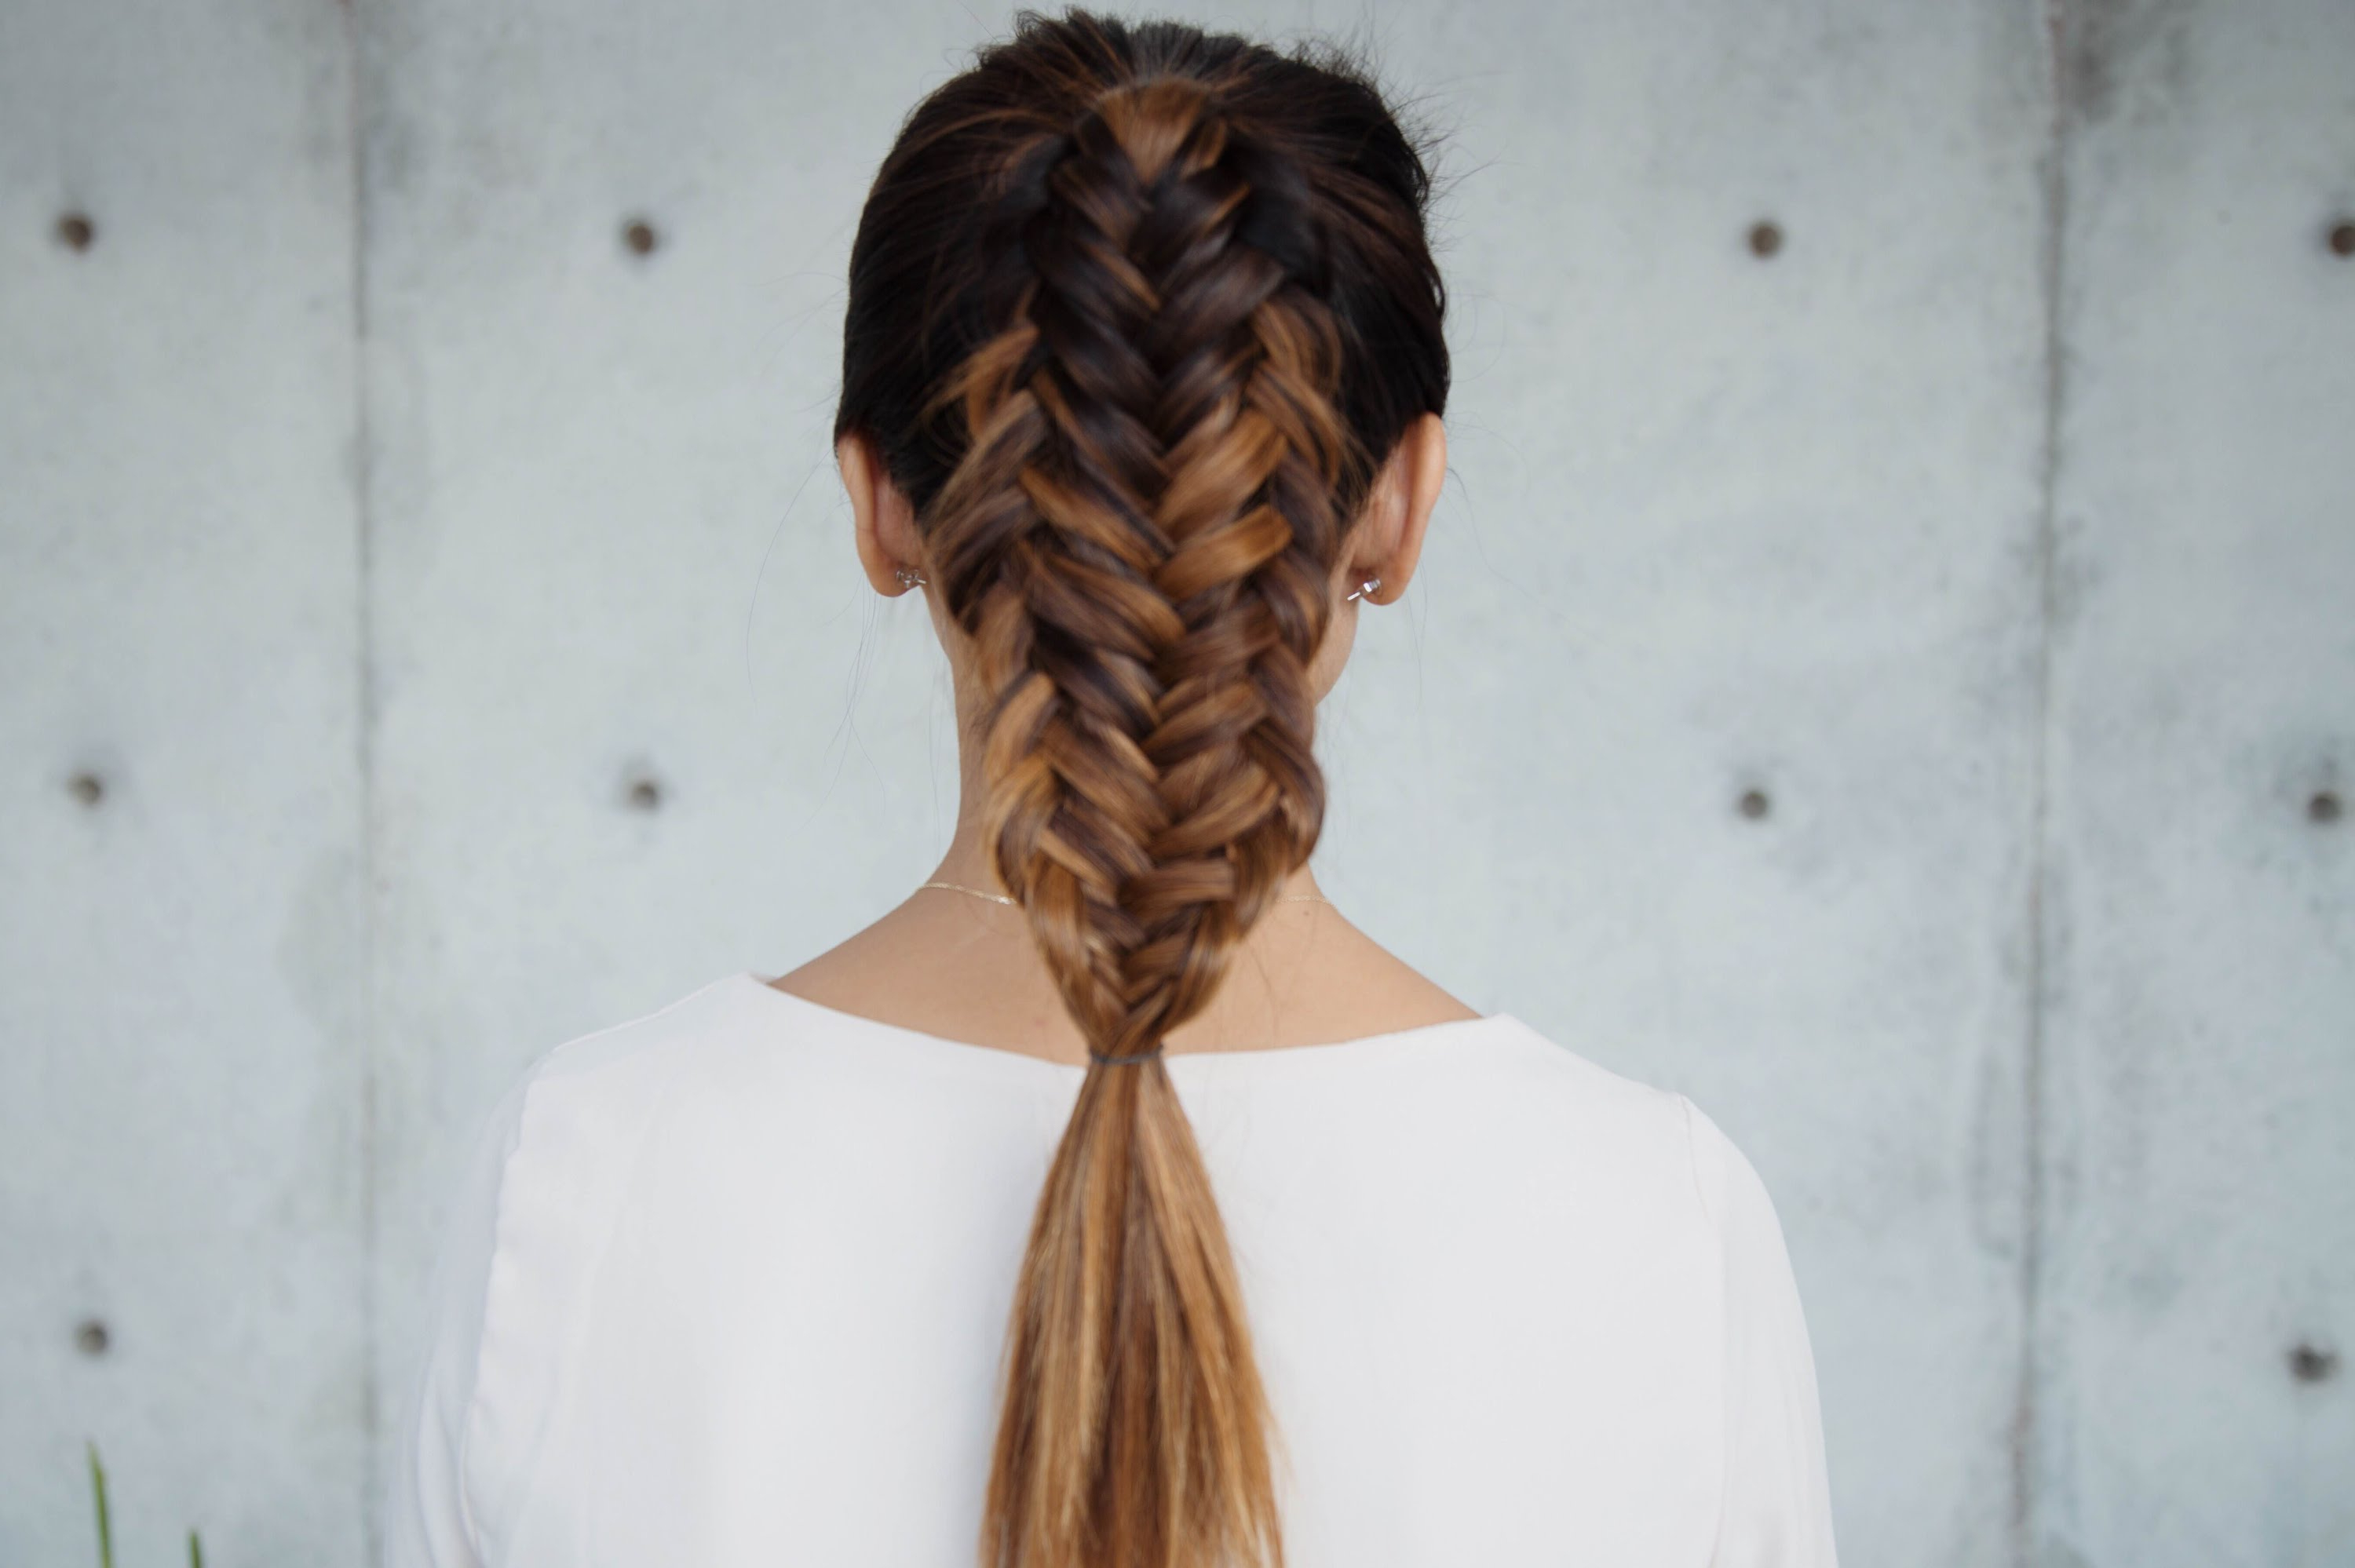 Fishtail Braid: Top 25 Beautiful Fishtail Braids Throughout Preferred Mermaid Fishtail Hairstyles With Hair Flowers (View 12 of 20)